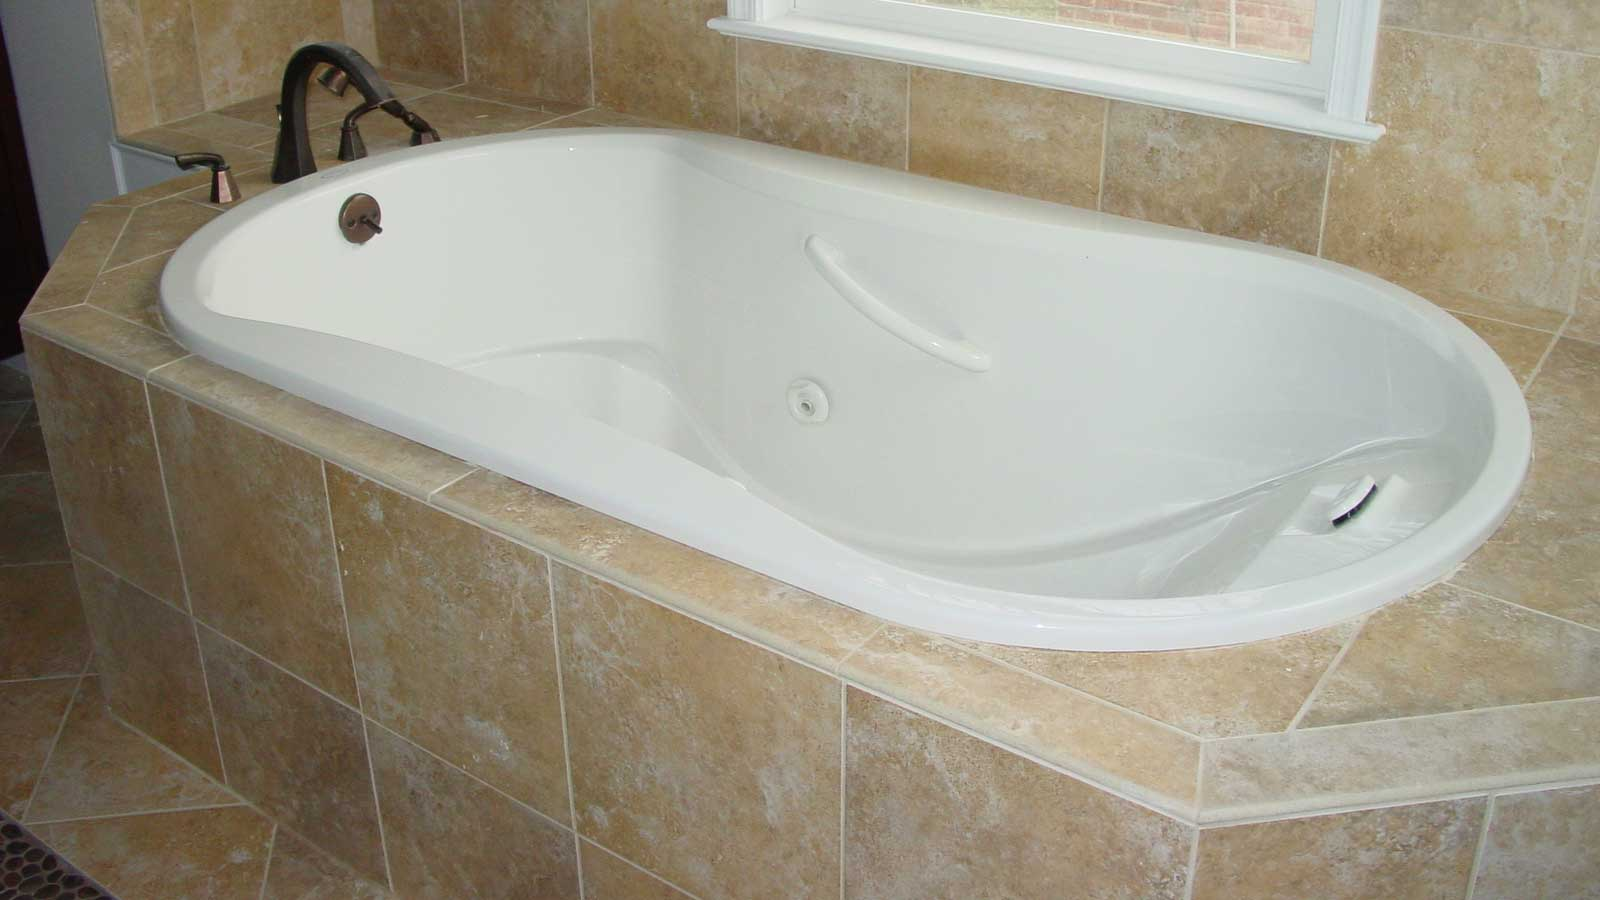 Bathtub-recessed-tub